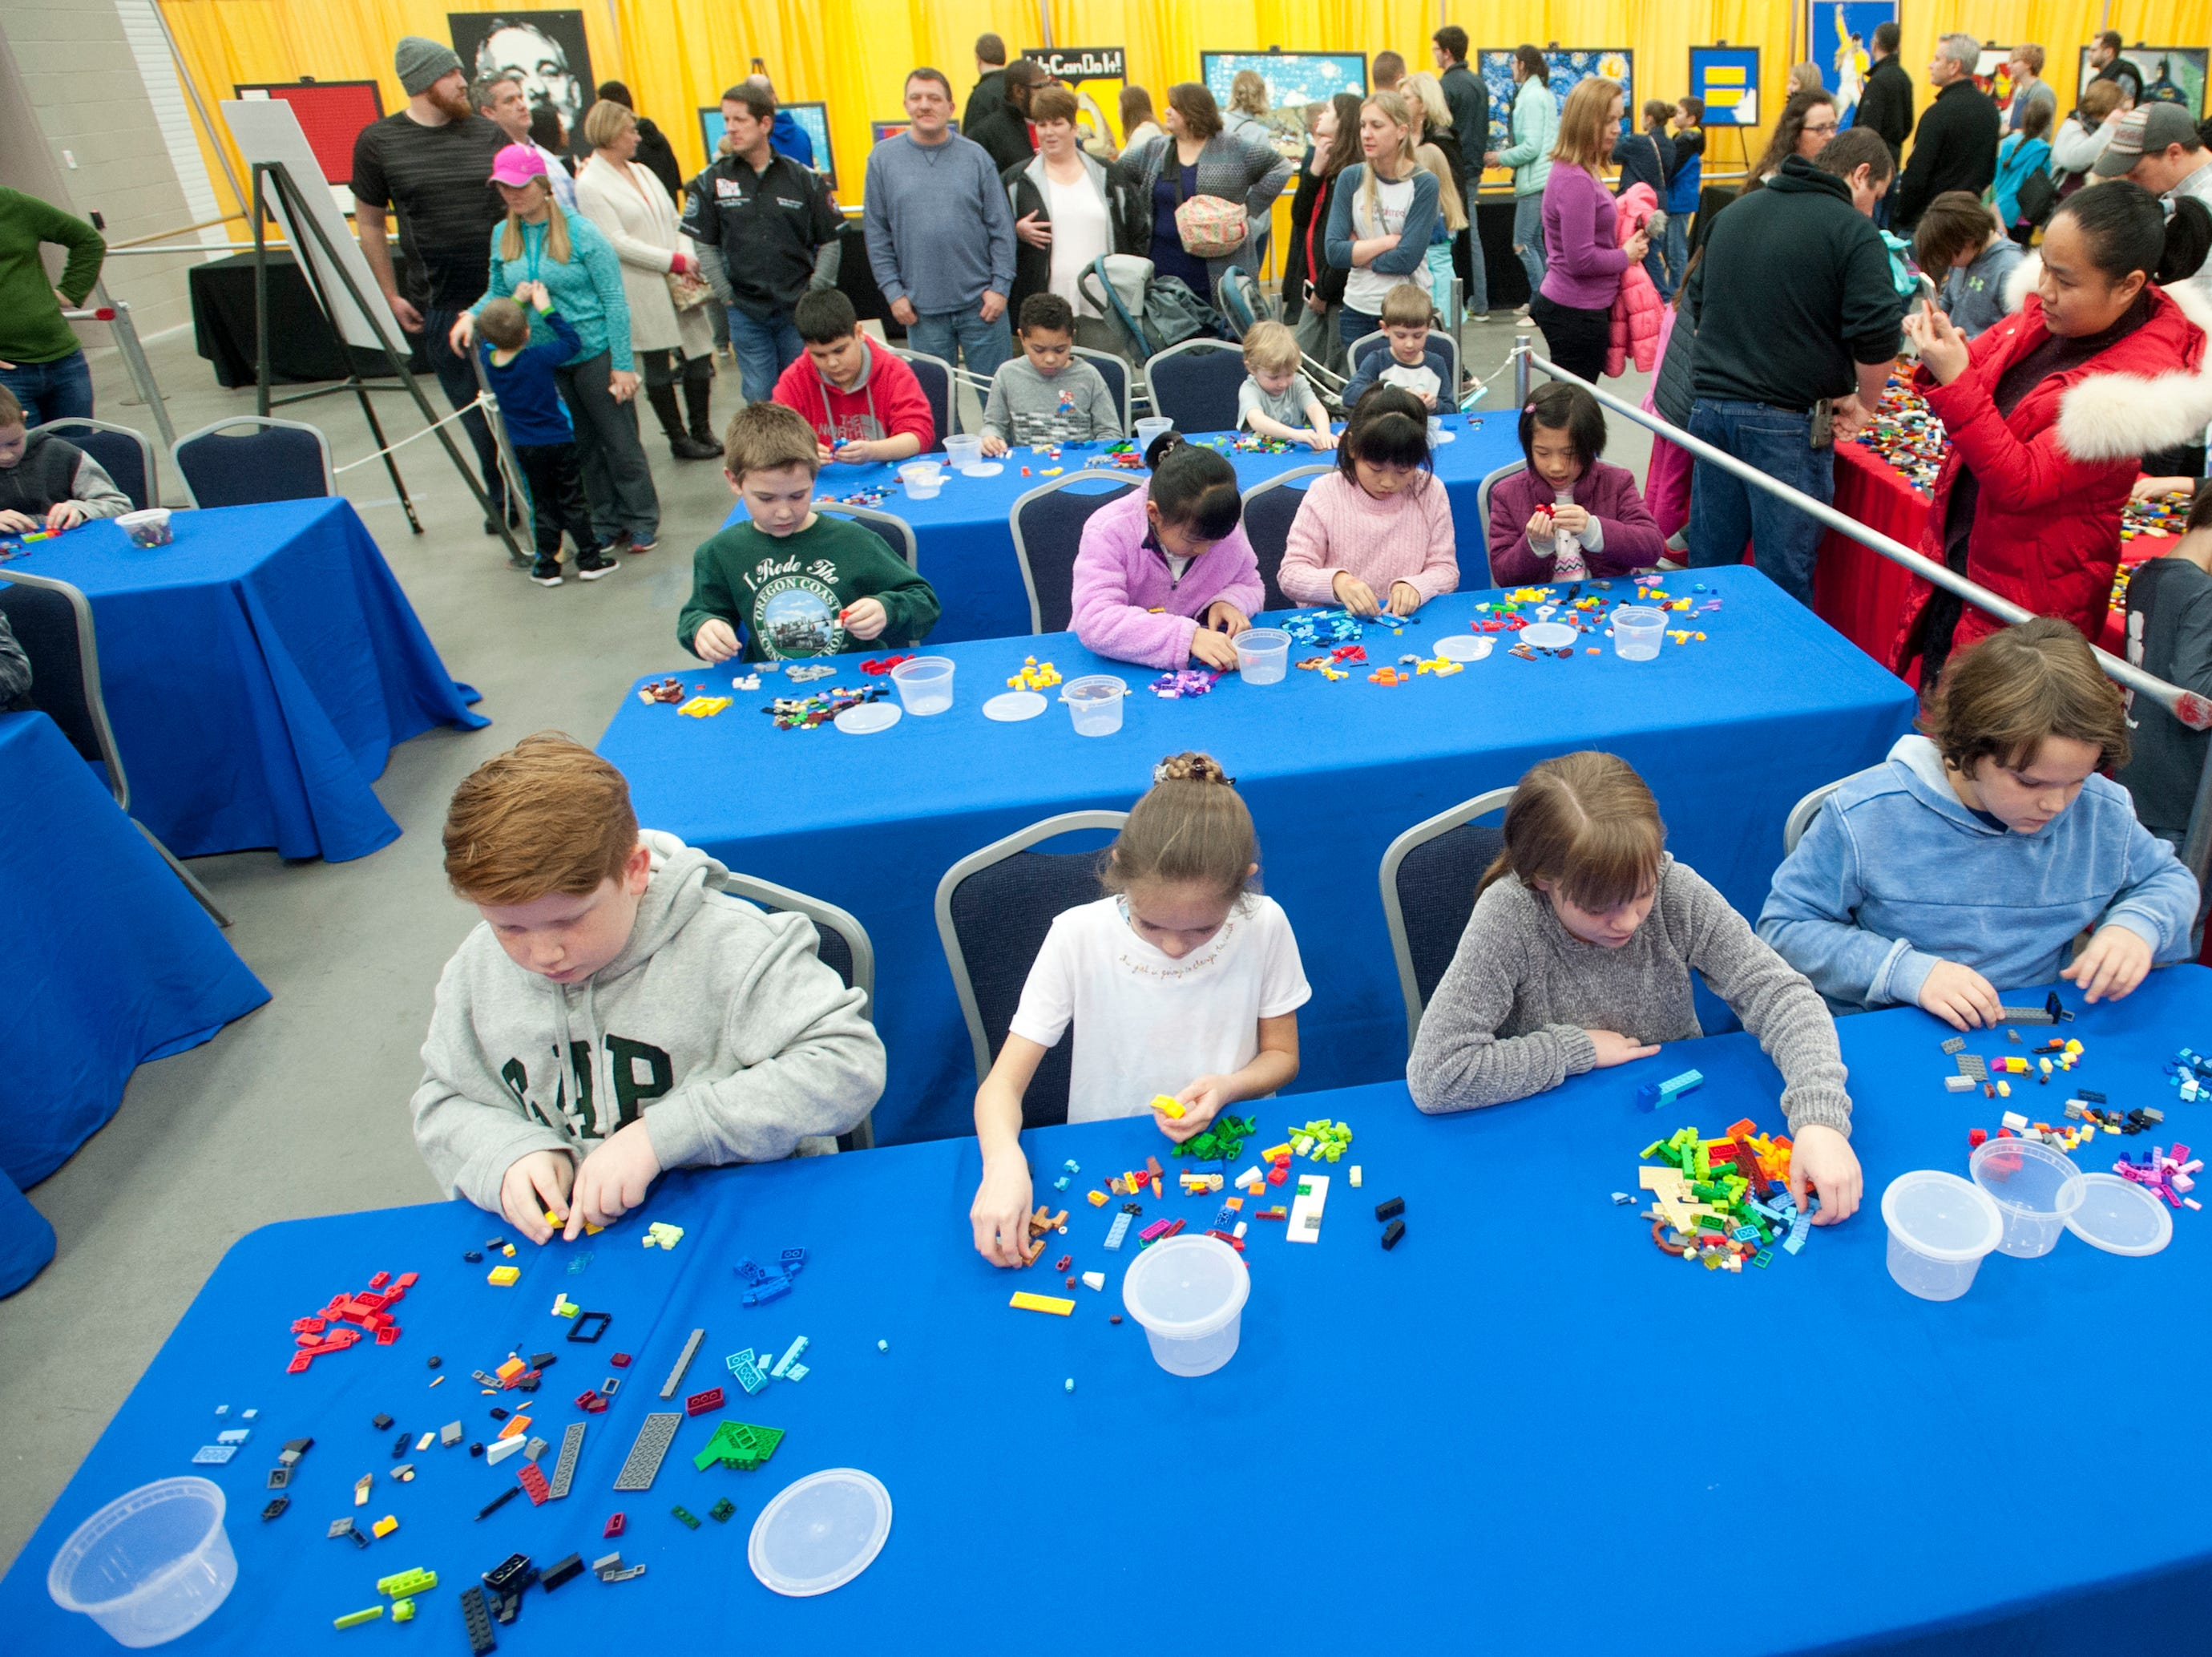 During a Lego building competition, l-r: Sam Catron, 11, of Shelbyville, Kinsley Mast, 8, of Mountain View, Ark., Petra Hawkins, 9, of Danville and anded Hawkins, 10, her brother: all try their hand at creating a space station at the BrickUniverse Lego Fan Convention at the Kentucky International Convention Center in downtown Louisville.19 January 2019